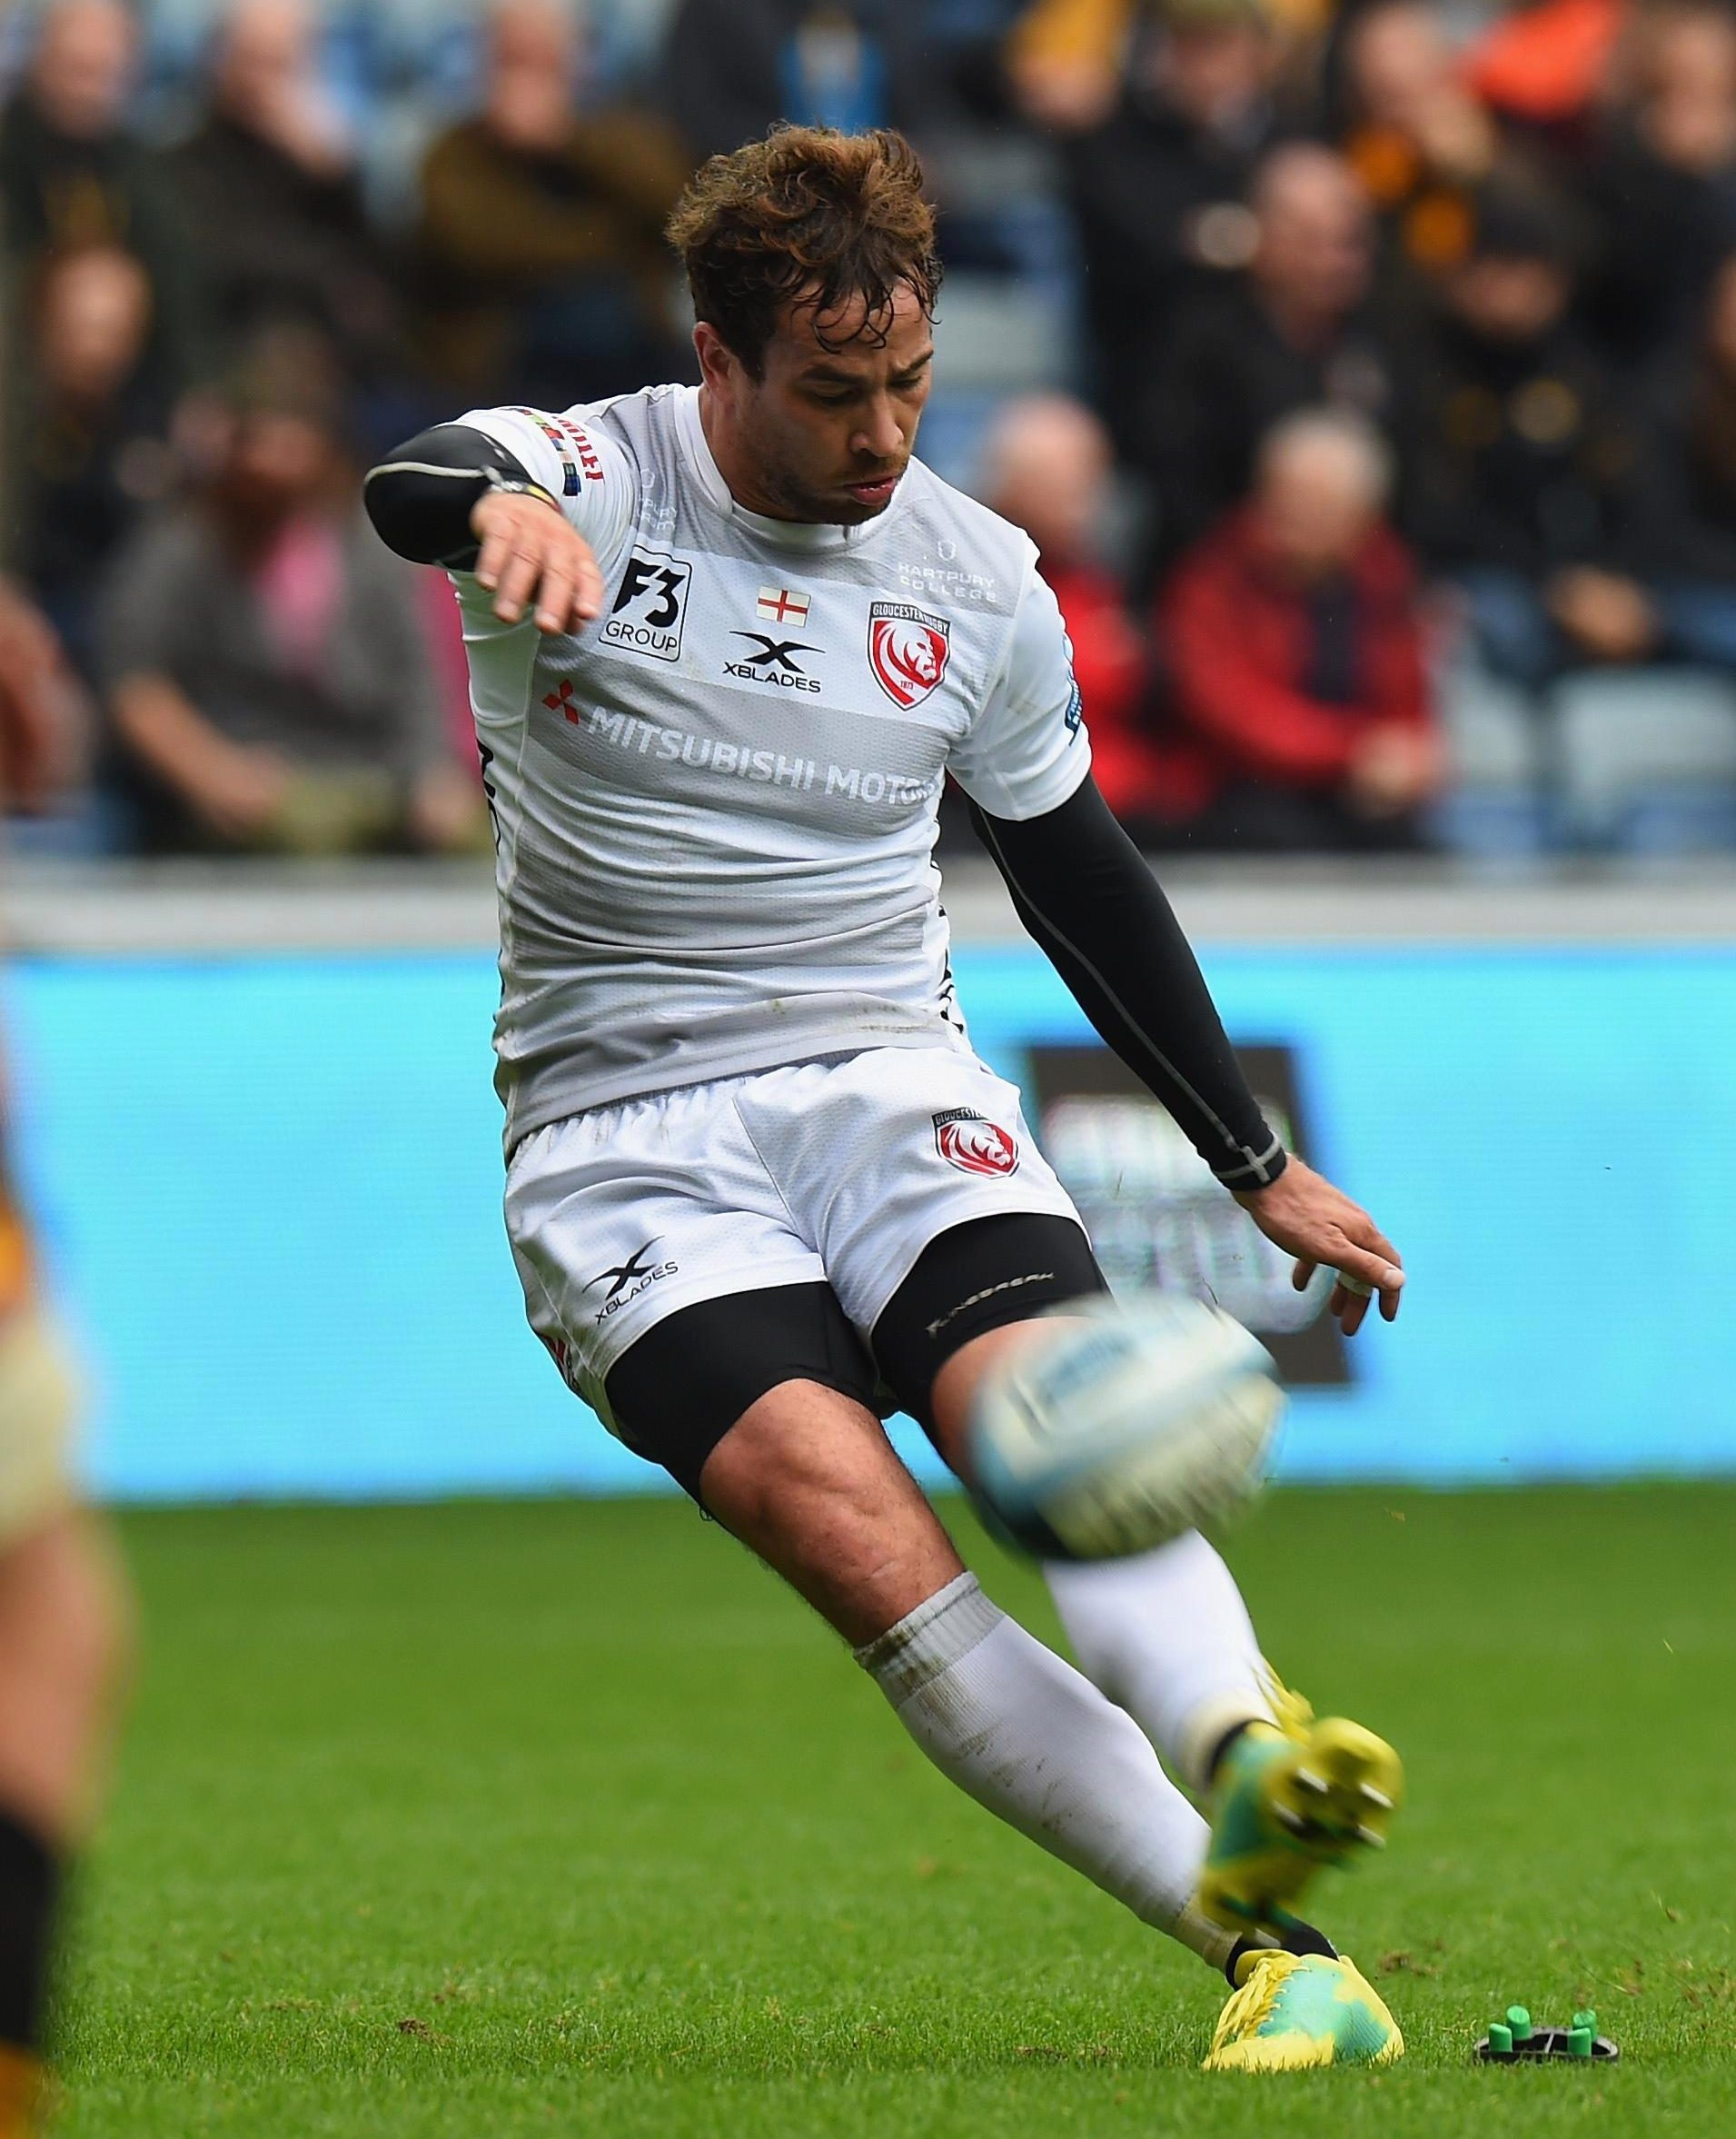 Danny Cipriani is the reigning Premiership player-of-the-month